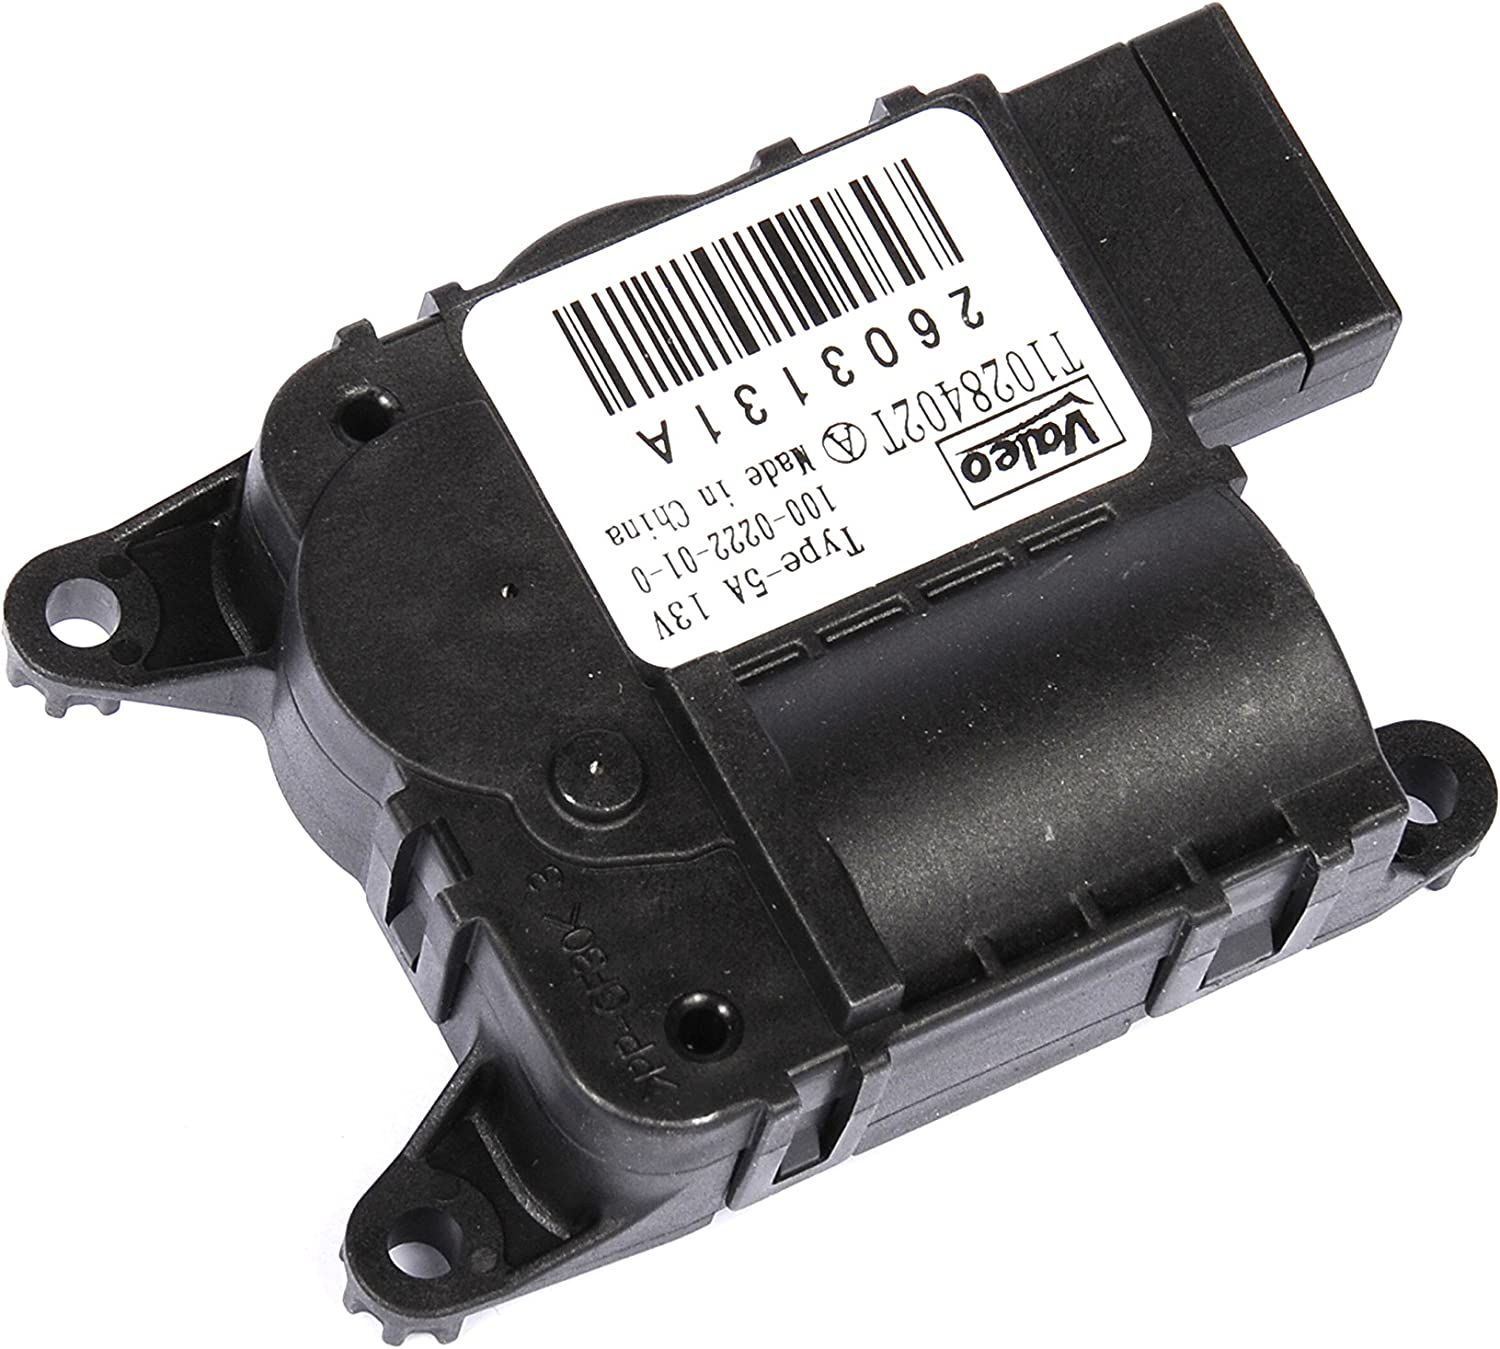 ACDelco 15-74327 GM Original Equipment Black Heating and Air Conditioning Control Panel